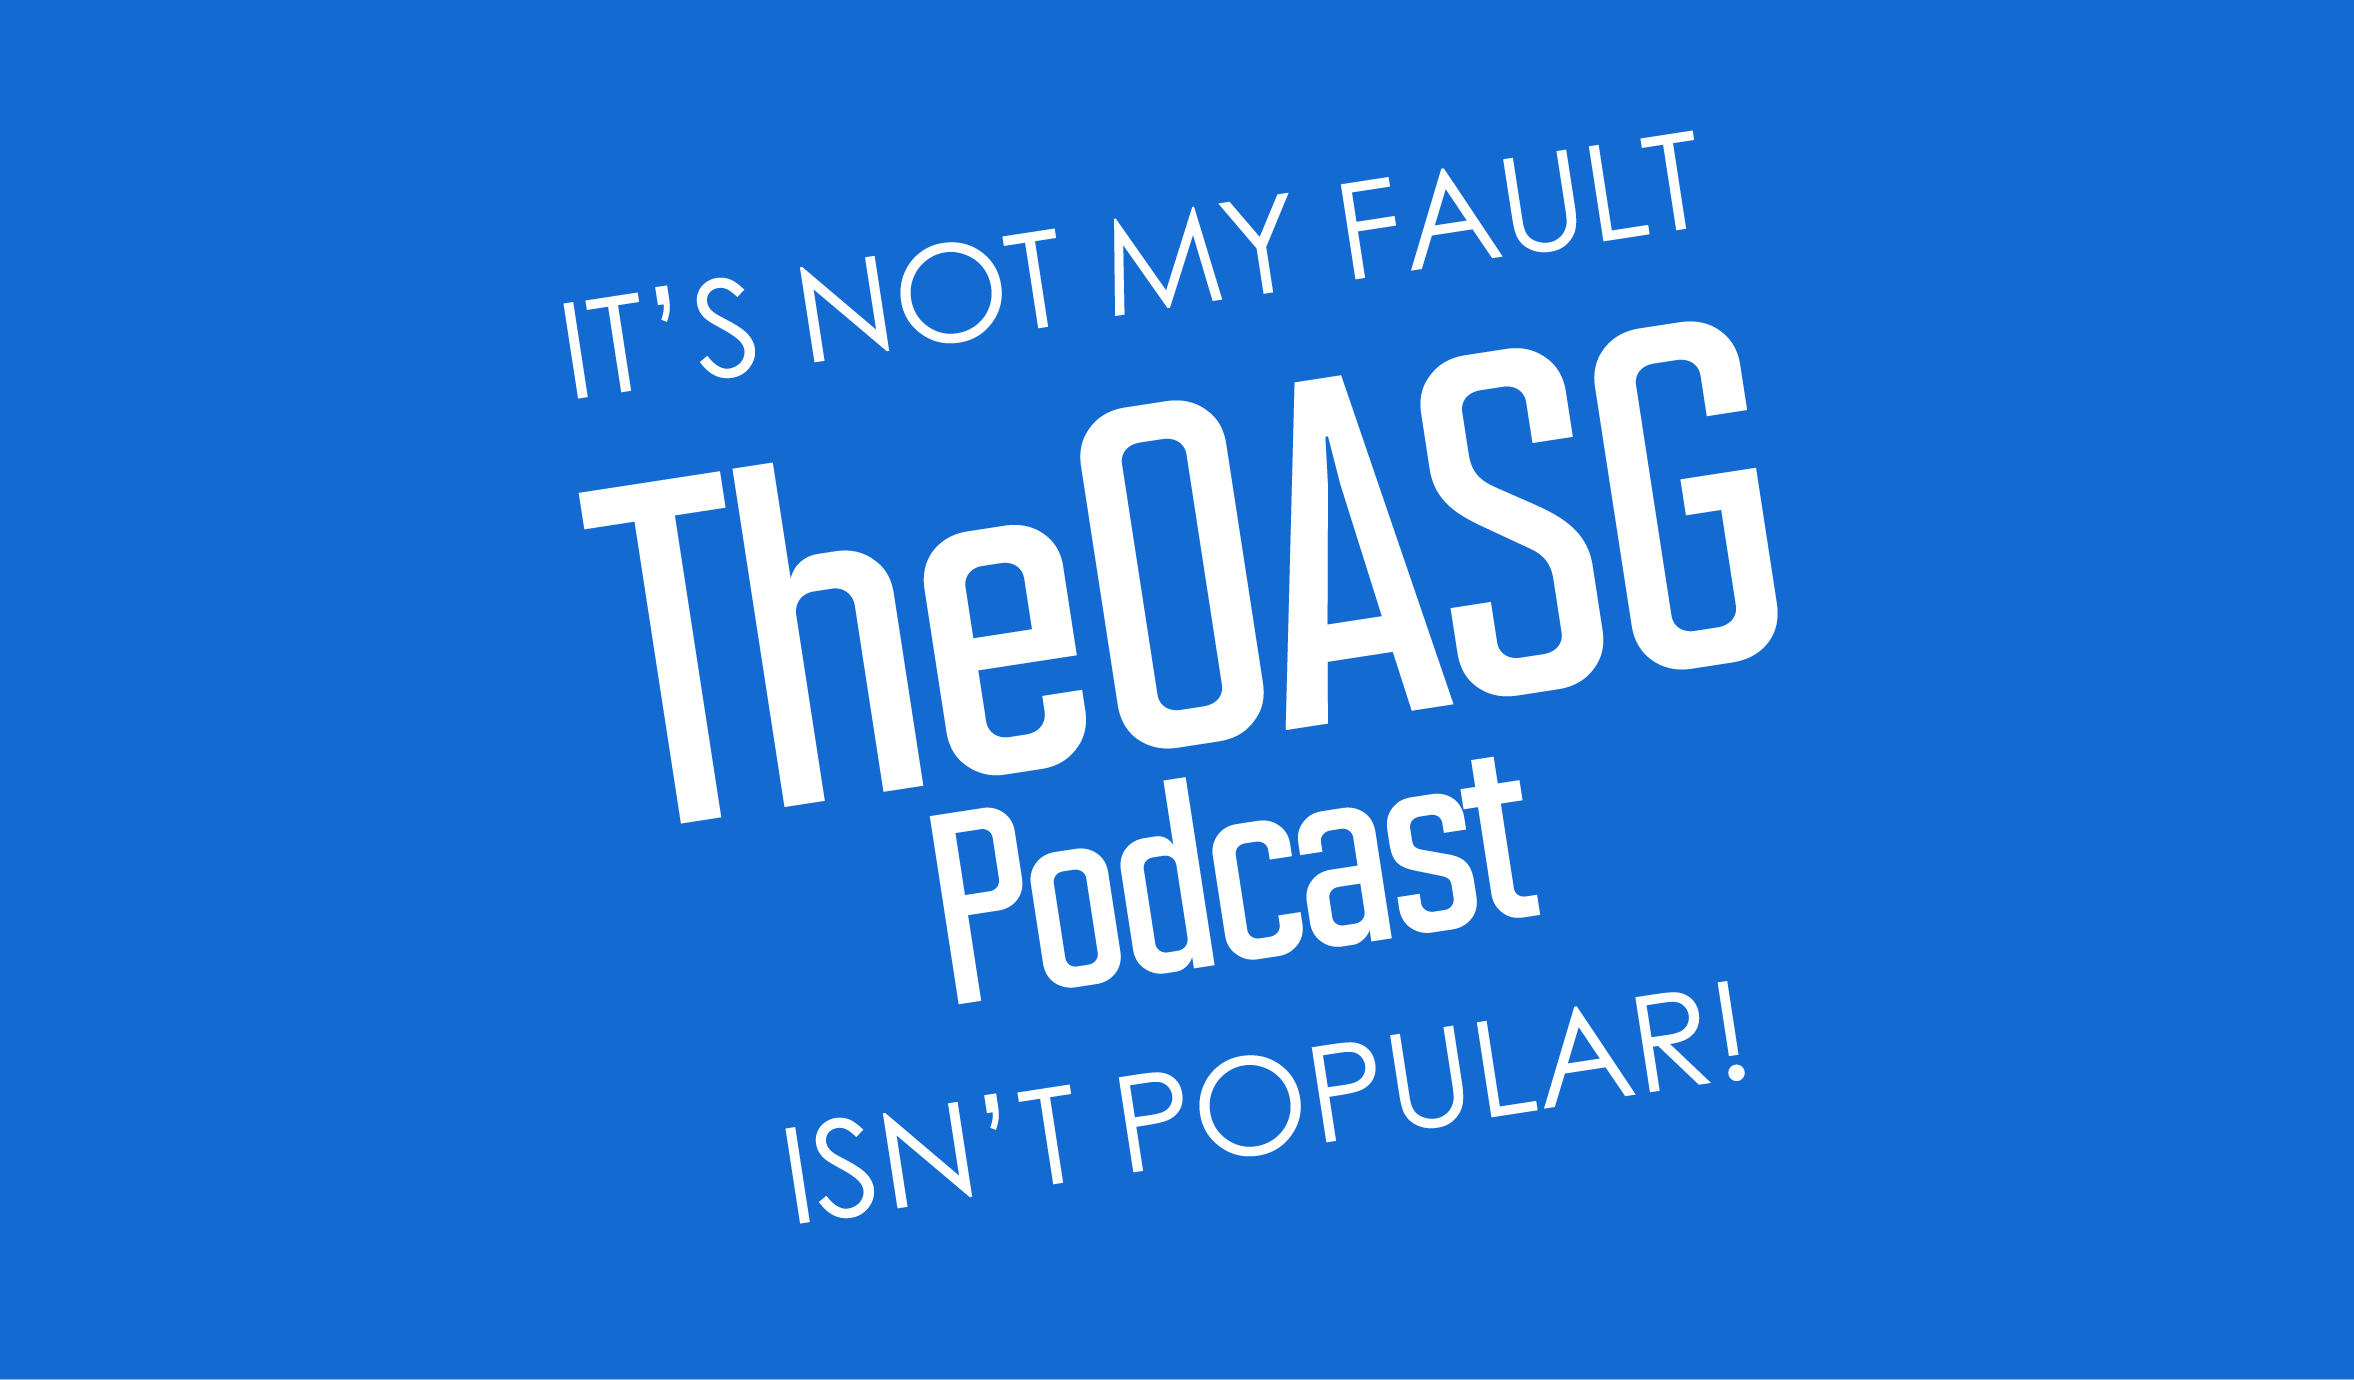 Featured image for TheOASG Podcast Episode 131: No Surprises From The Industry This Time!